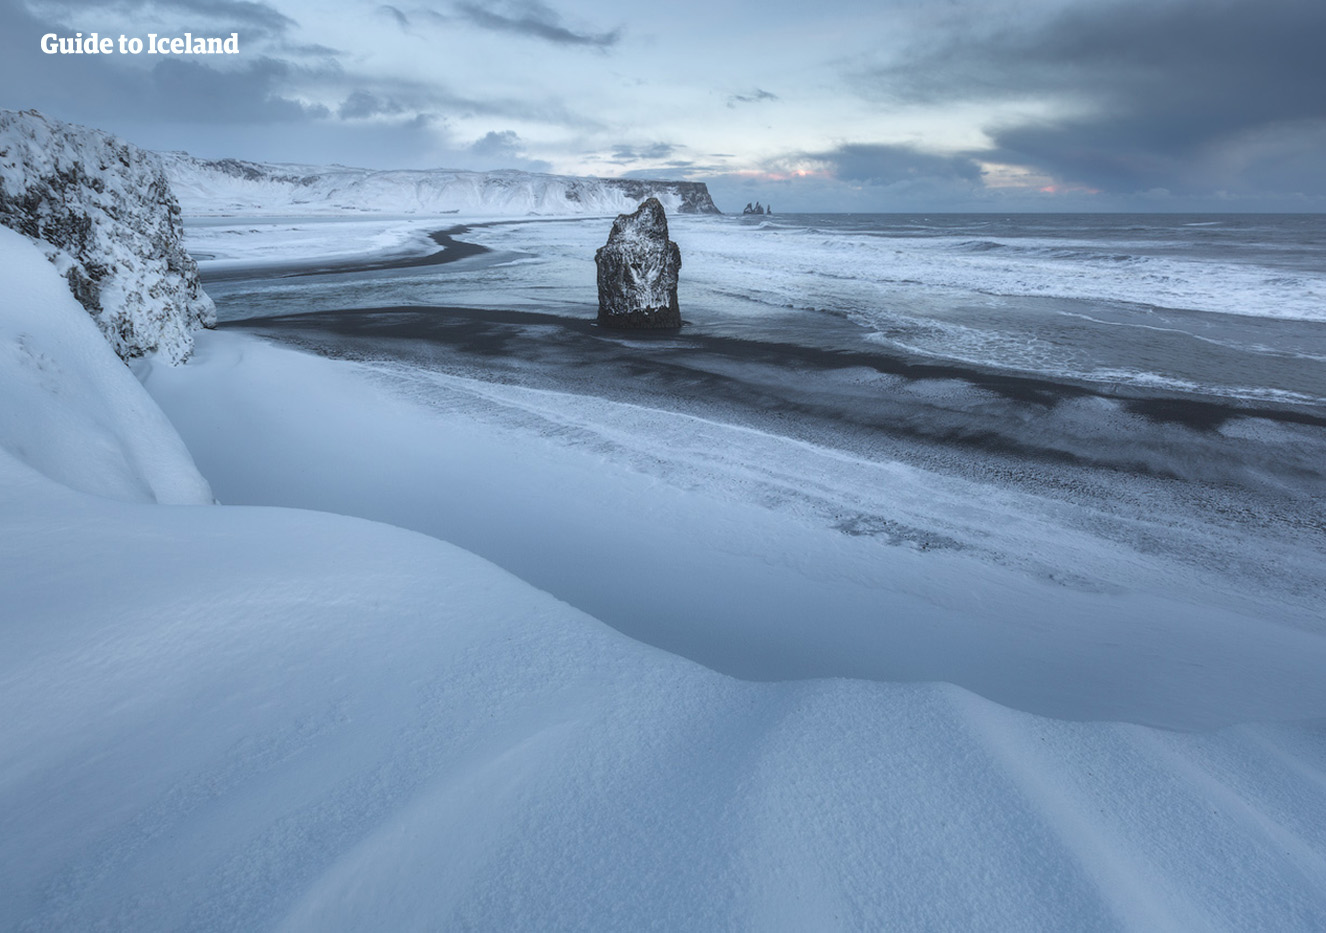 The black sand beaches of Iceland often are covered in winter snows.